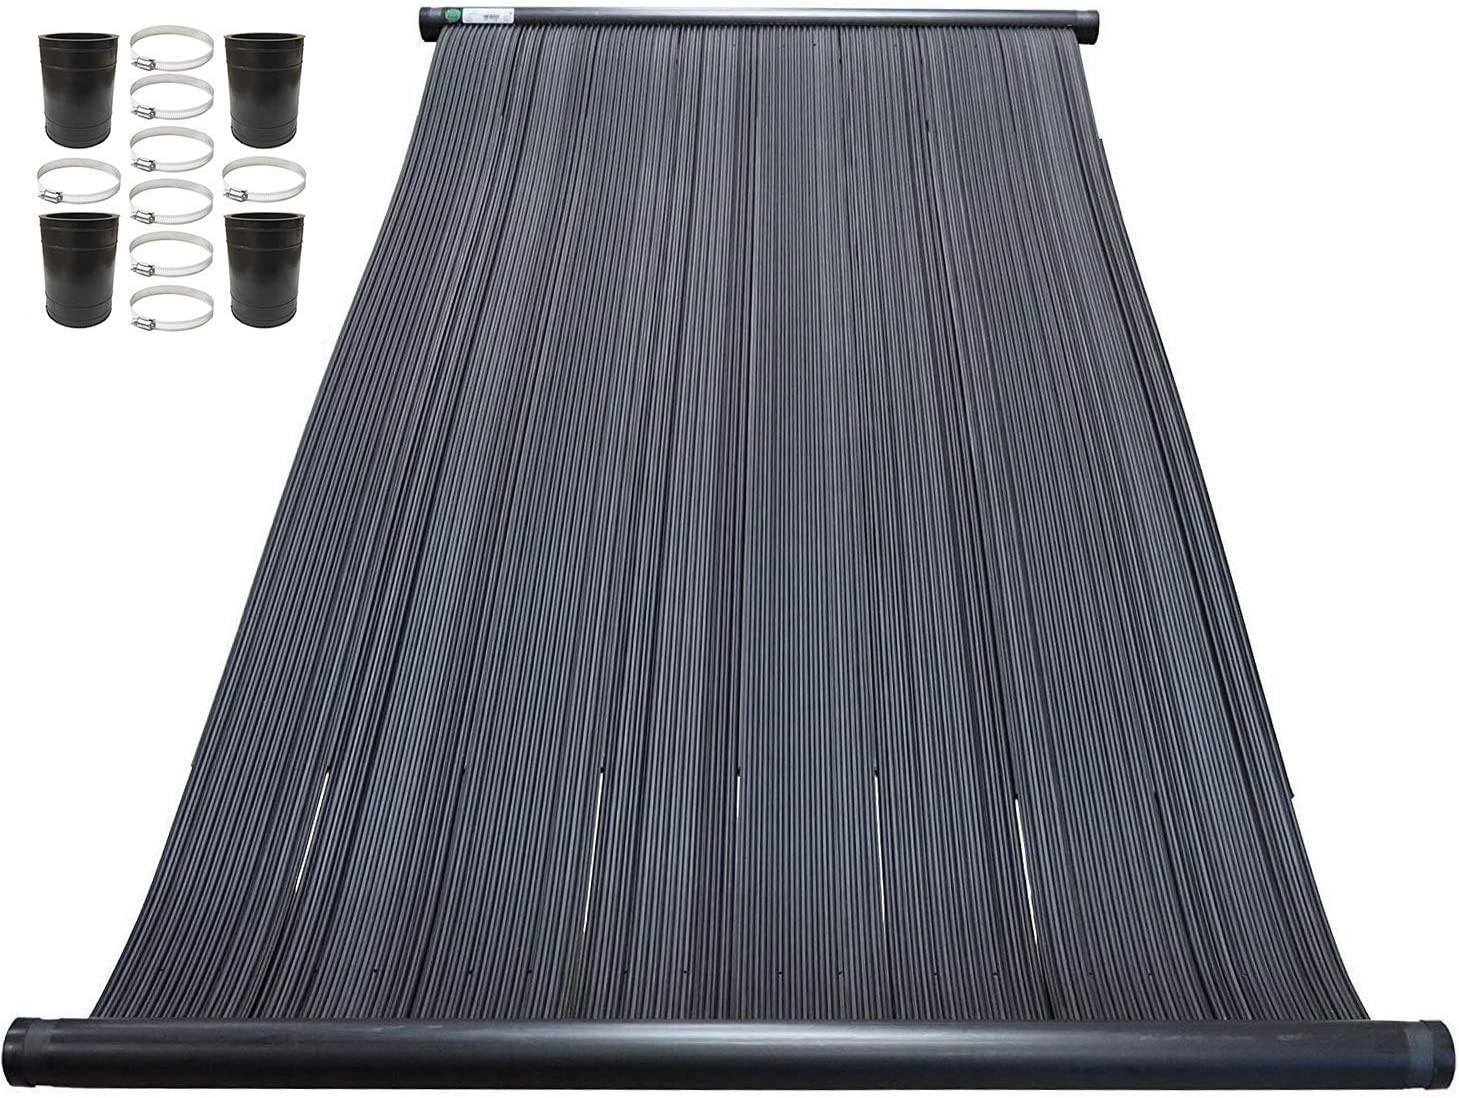 Large discharge sale Highest Performing Design - Universal Tulsa Mall Re Panel Heater Solar Pool